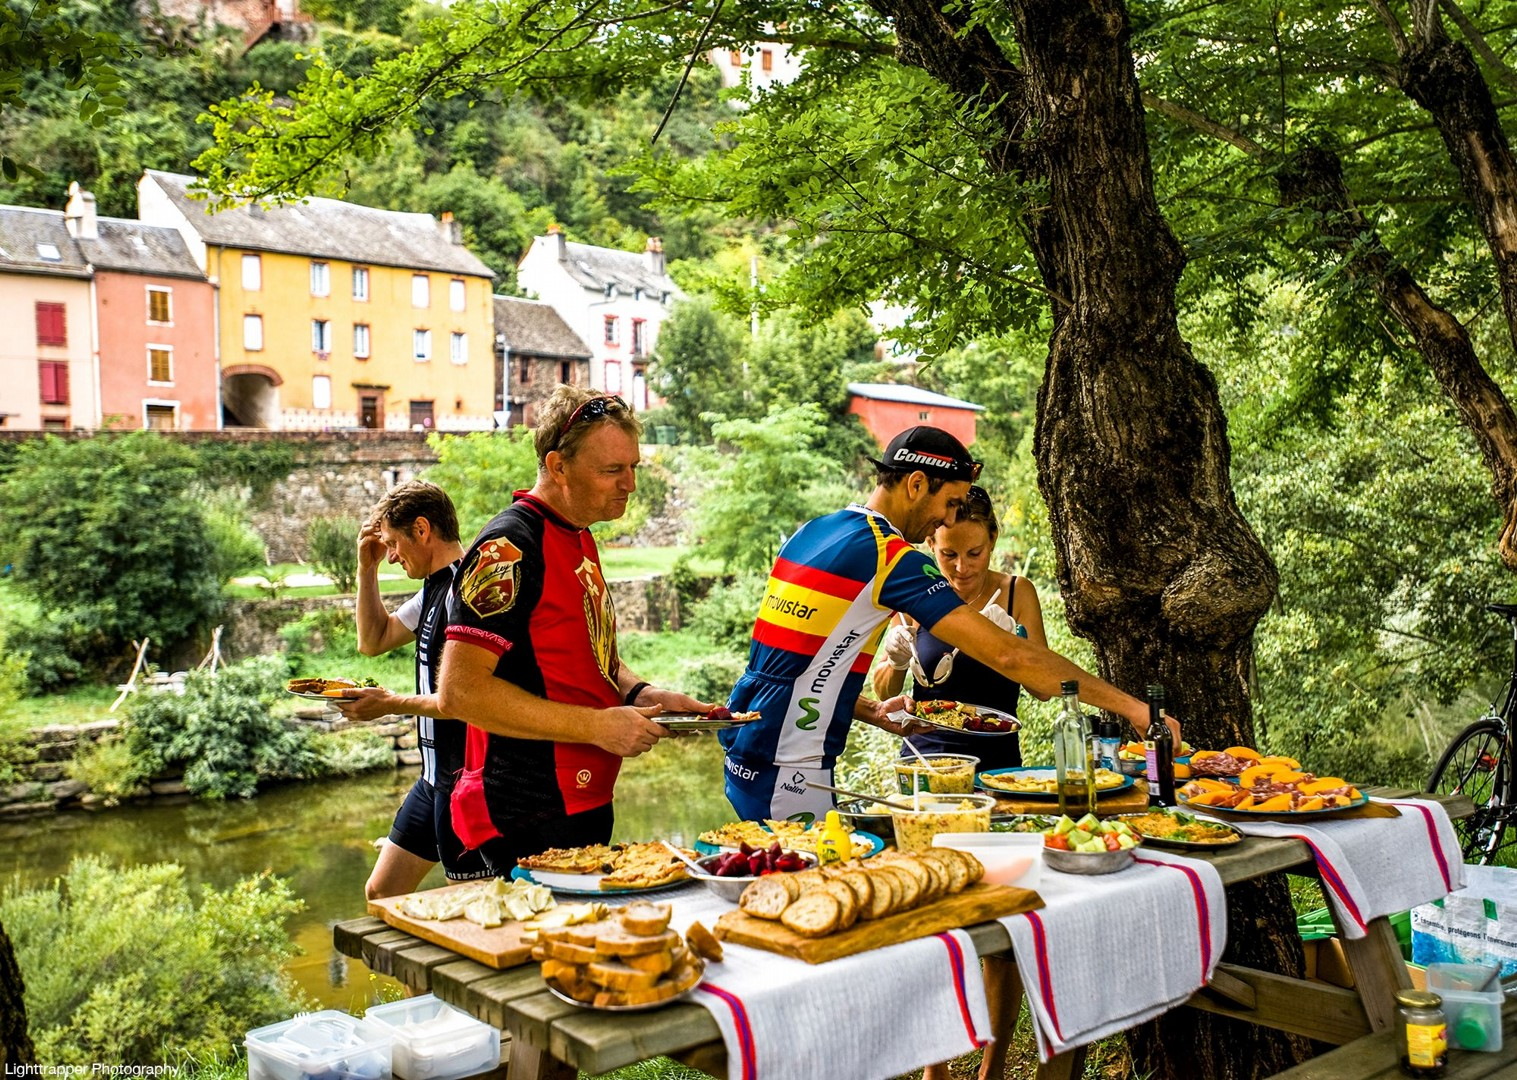 saddle-skedaddle-picnic-for-cyclists-food-cycling-holidays-in-france.jpg - France - Ardeche to Carcassonne - Guided Road Cycling Holiday - Road Cycling